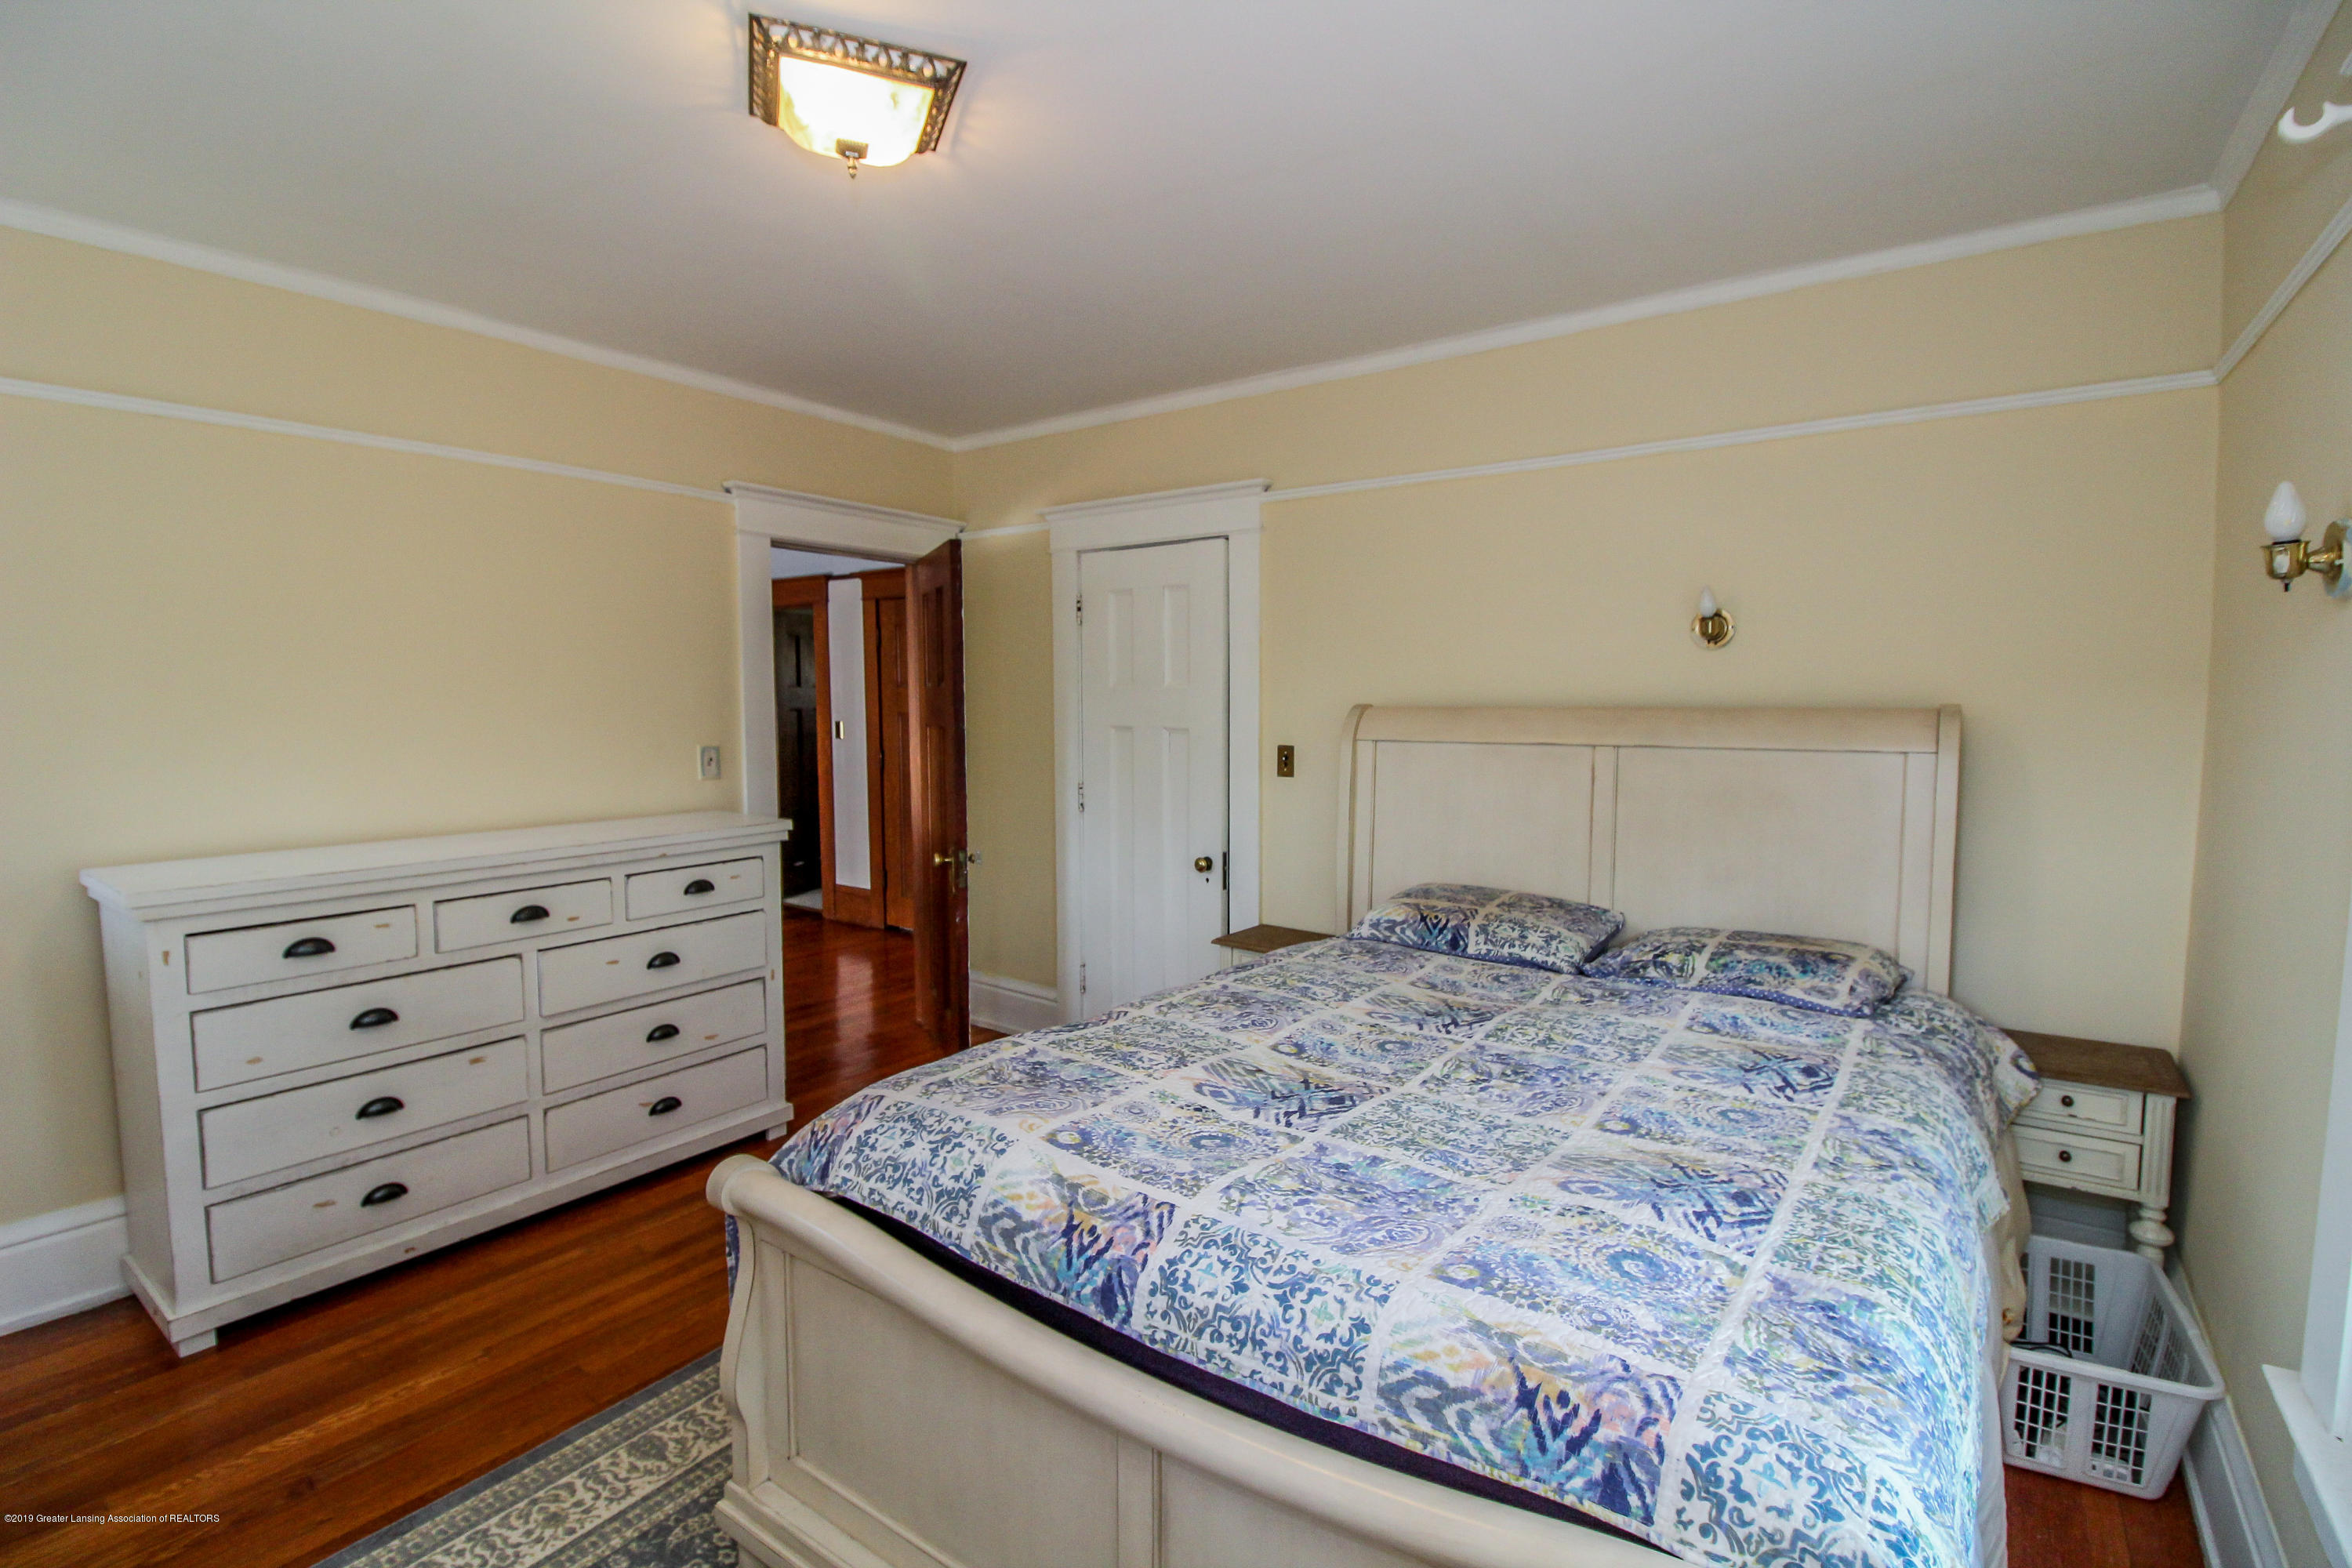 200 W Cass St - Bedroom - 38